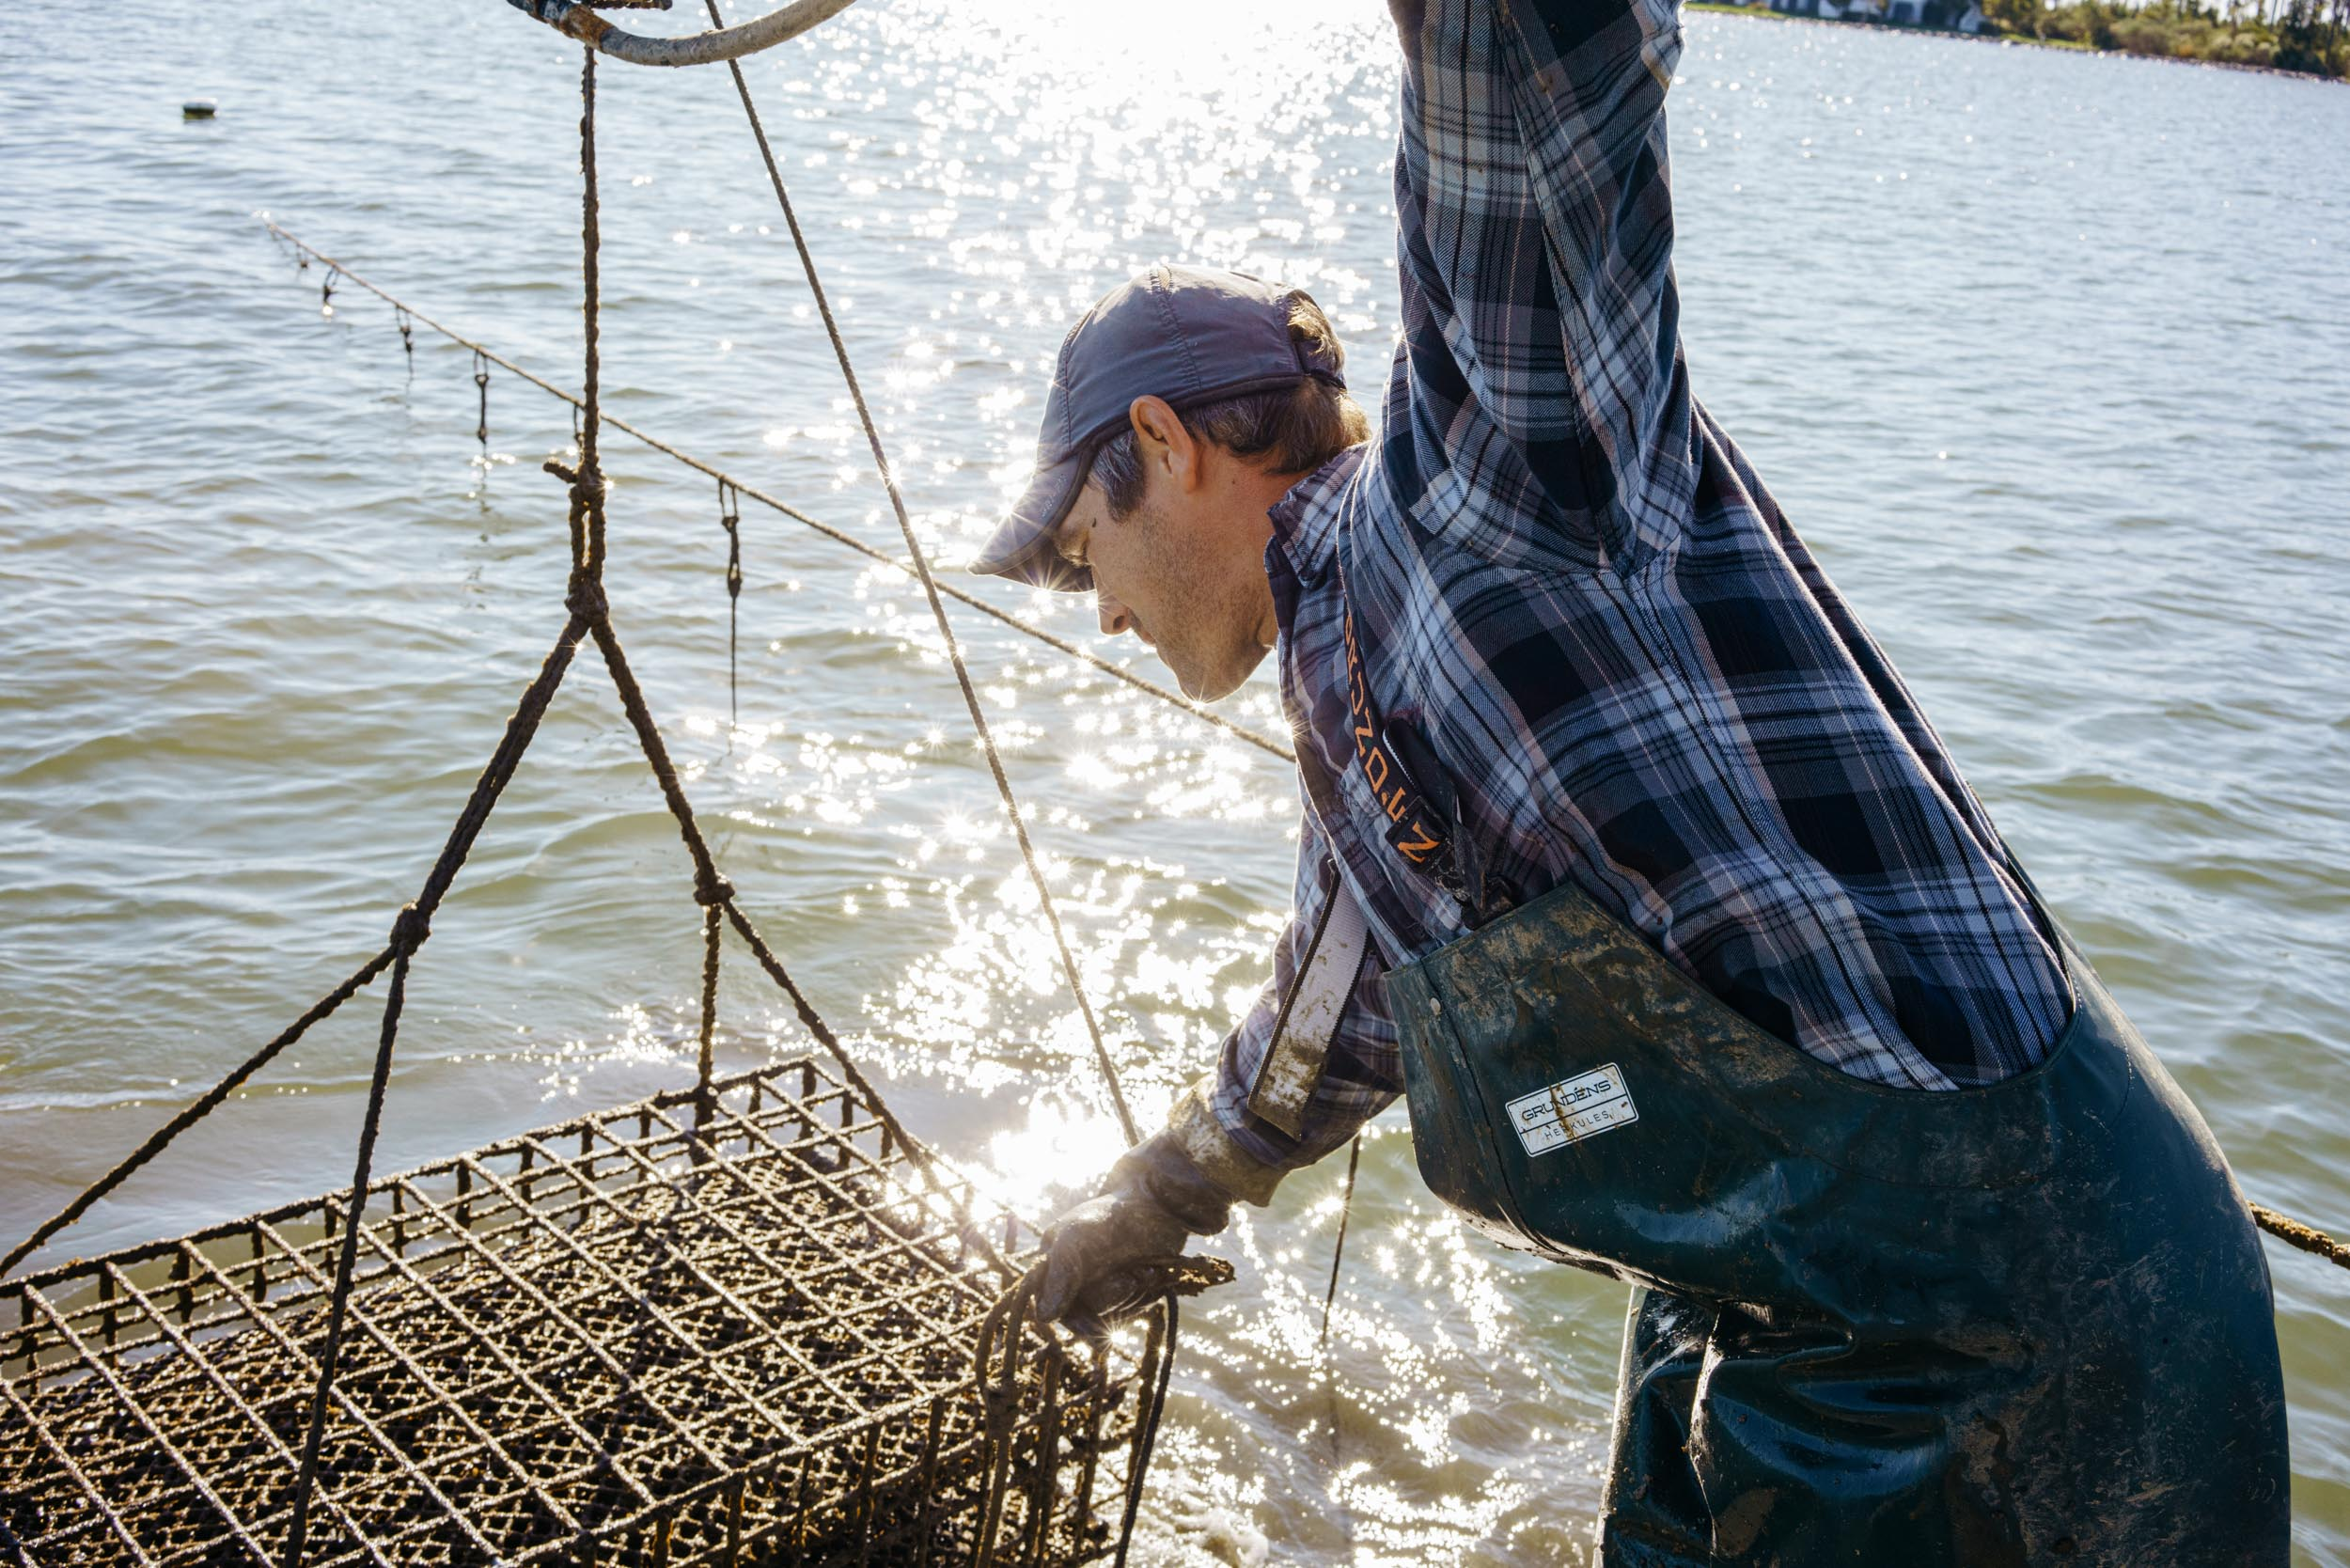 waterman pulling up oyster cages